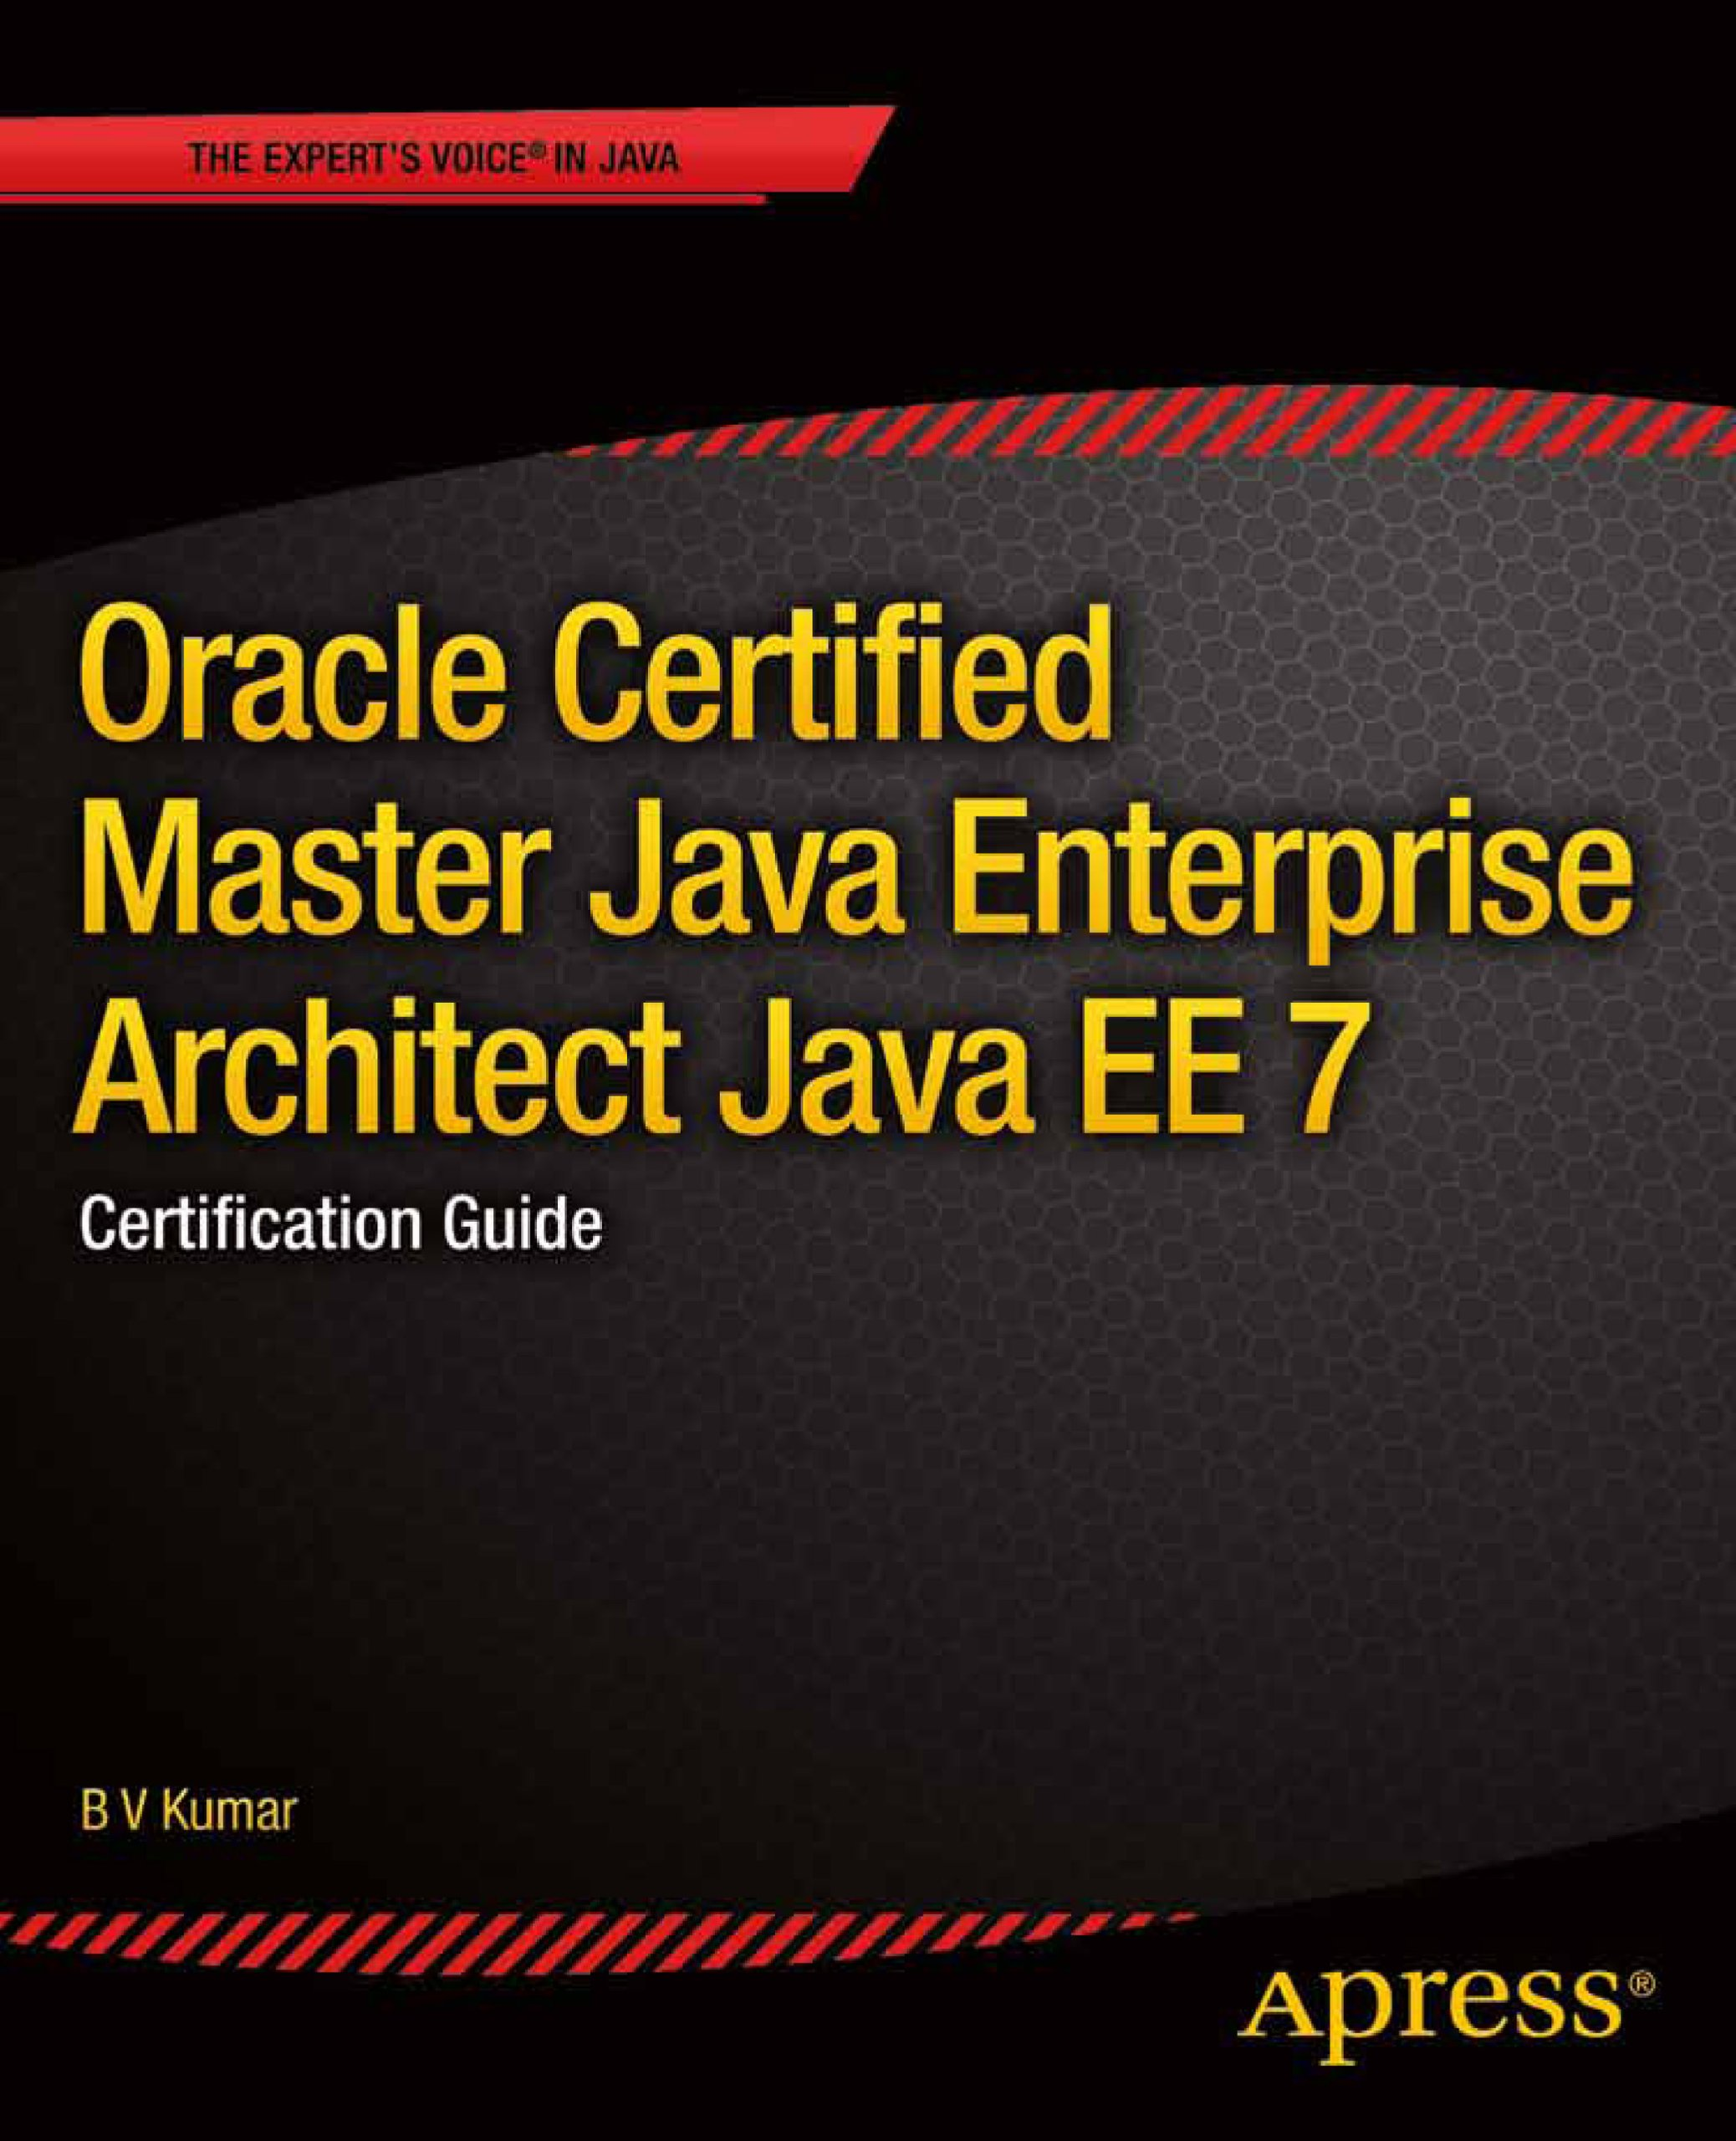 Oracle Certified Master Java Enterprise Architect Java Ee 7